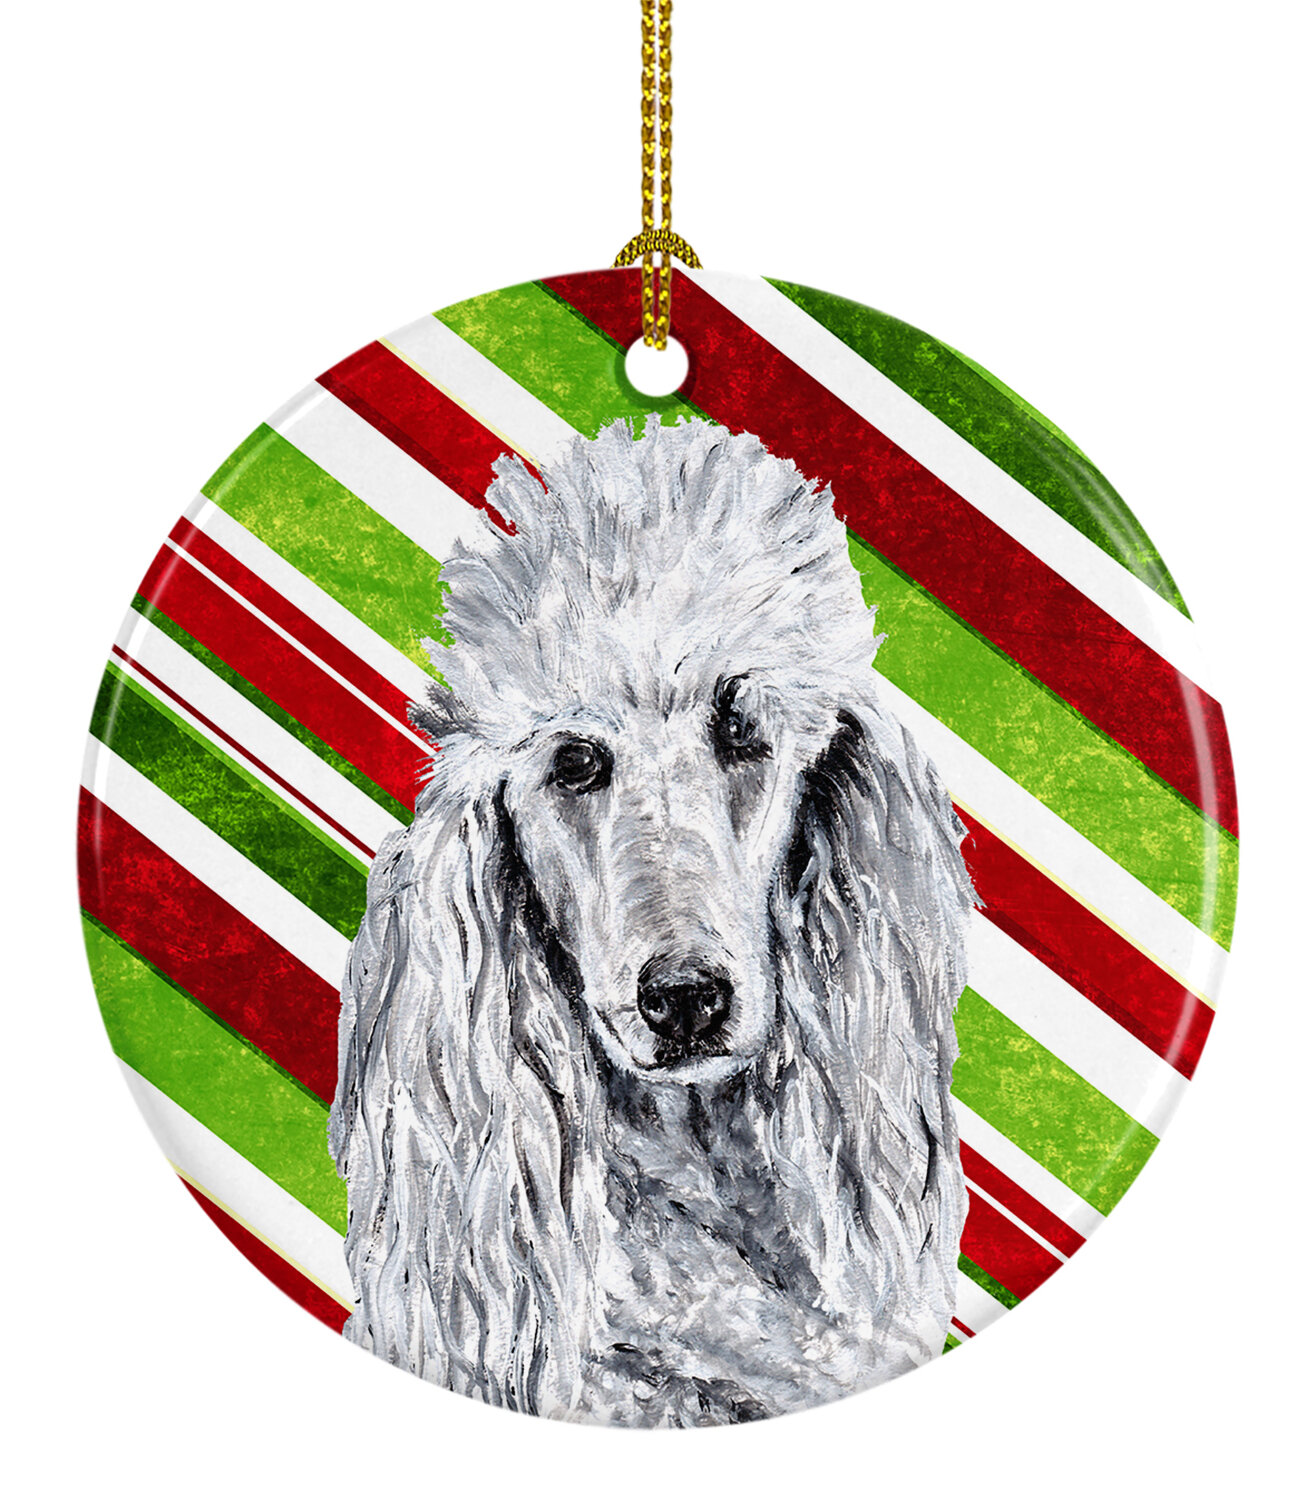 The Holiday Aisle Standard Poodle Christmas Ceramic Hanging Figurine Ornament Wayfair